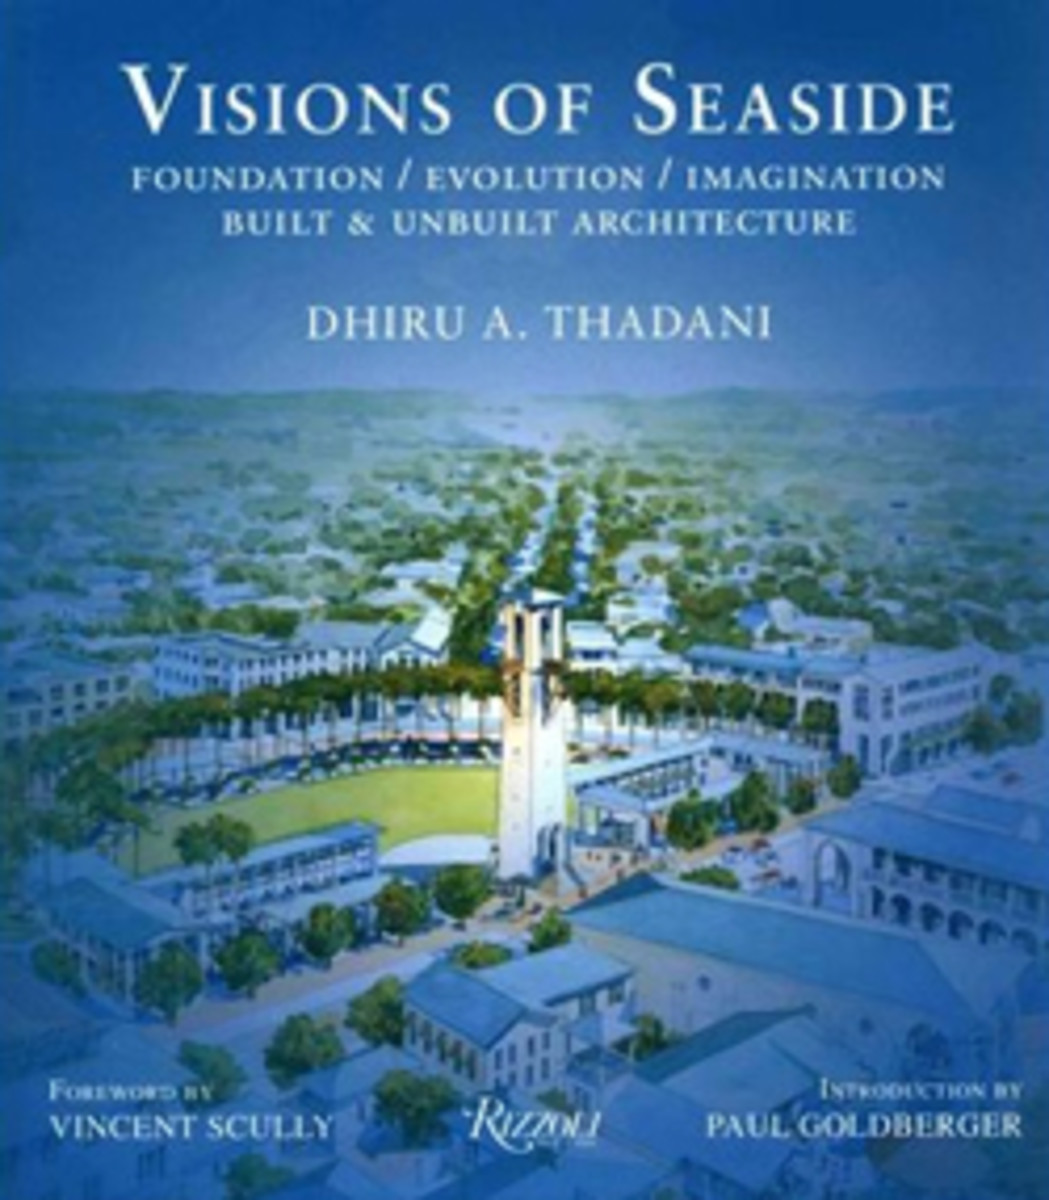 Visions of Seaside: Foundation, Evolution, Imagination. Built & Unbuilt Architecture